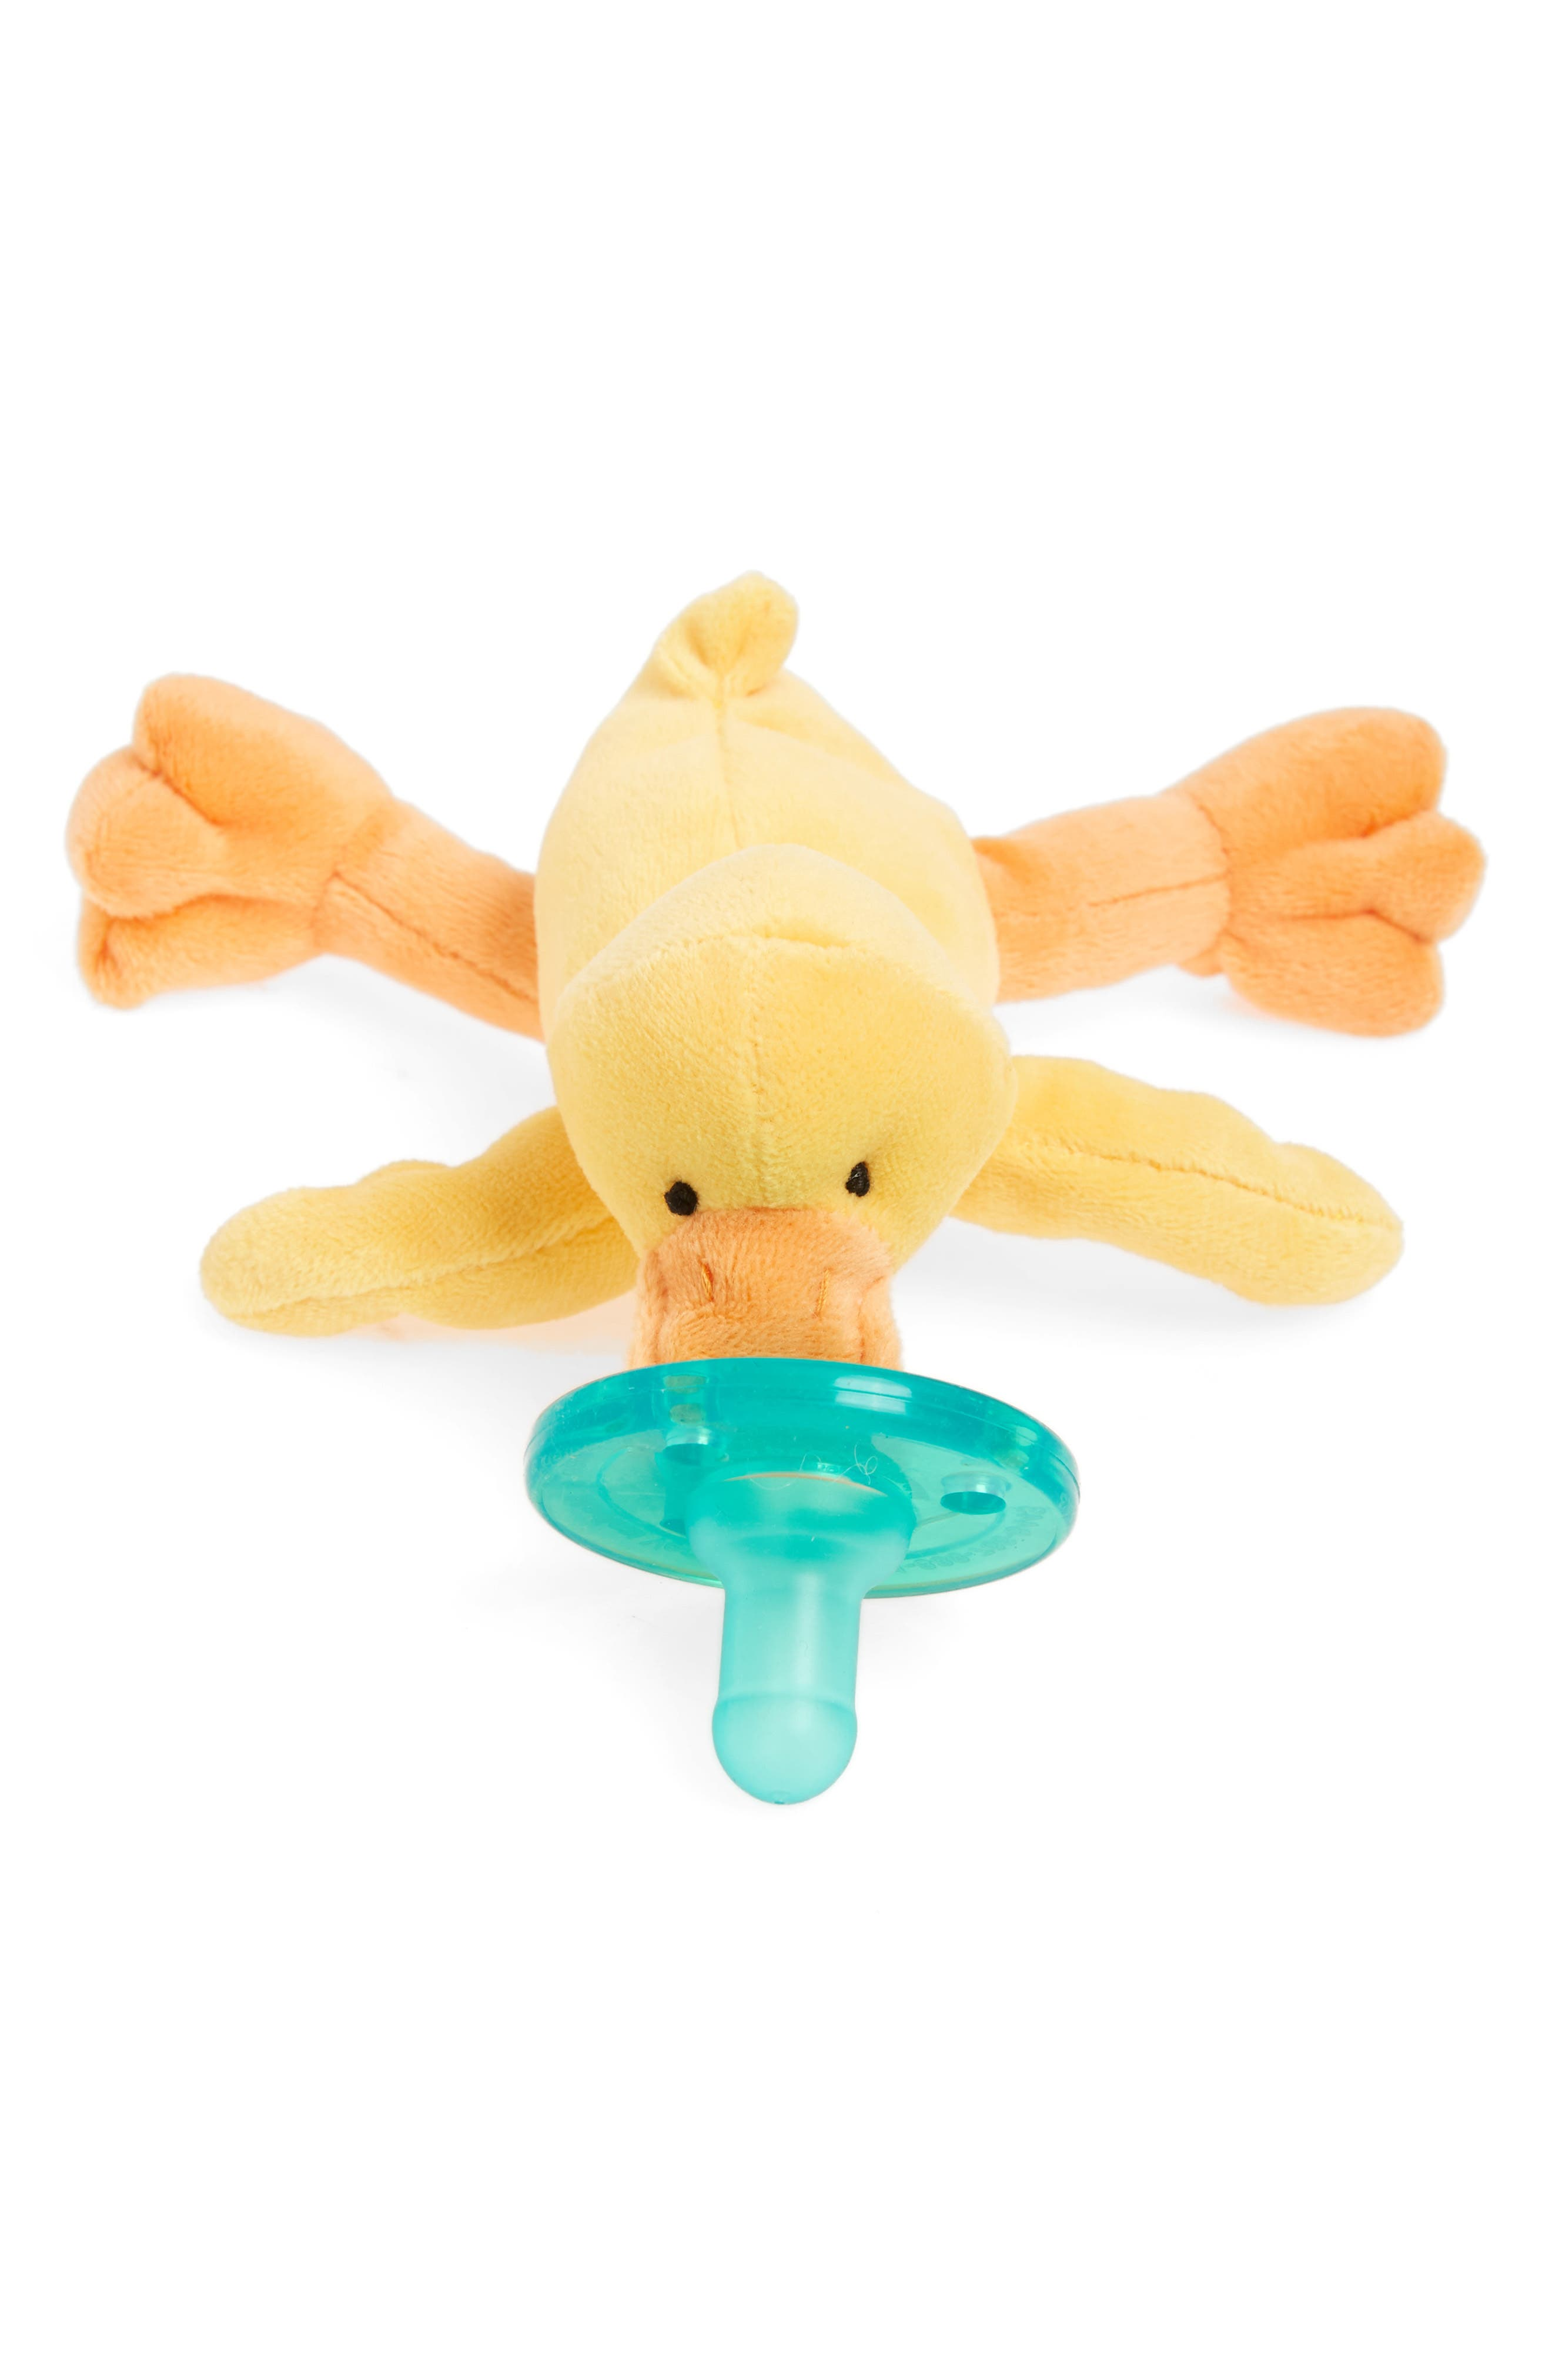 Baby Yellow Duck Pacifier Toy,                         Main,                         color, 700